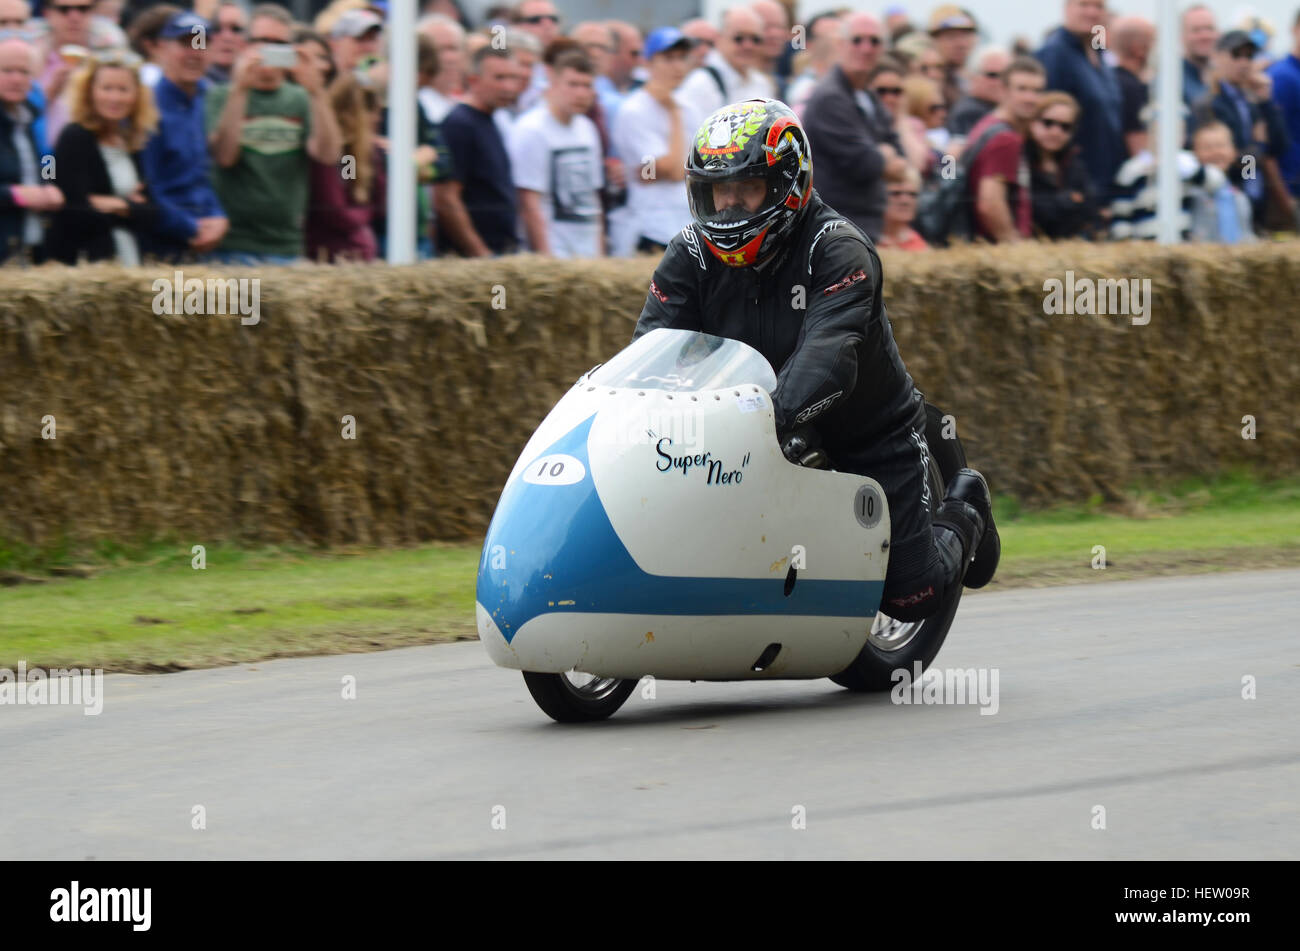 1963 Vincent Super Nero 1000cc Supercharged Sprint Machine At The 2016  Goodwood Festival Of Speed